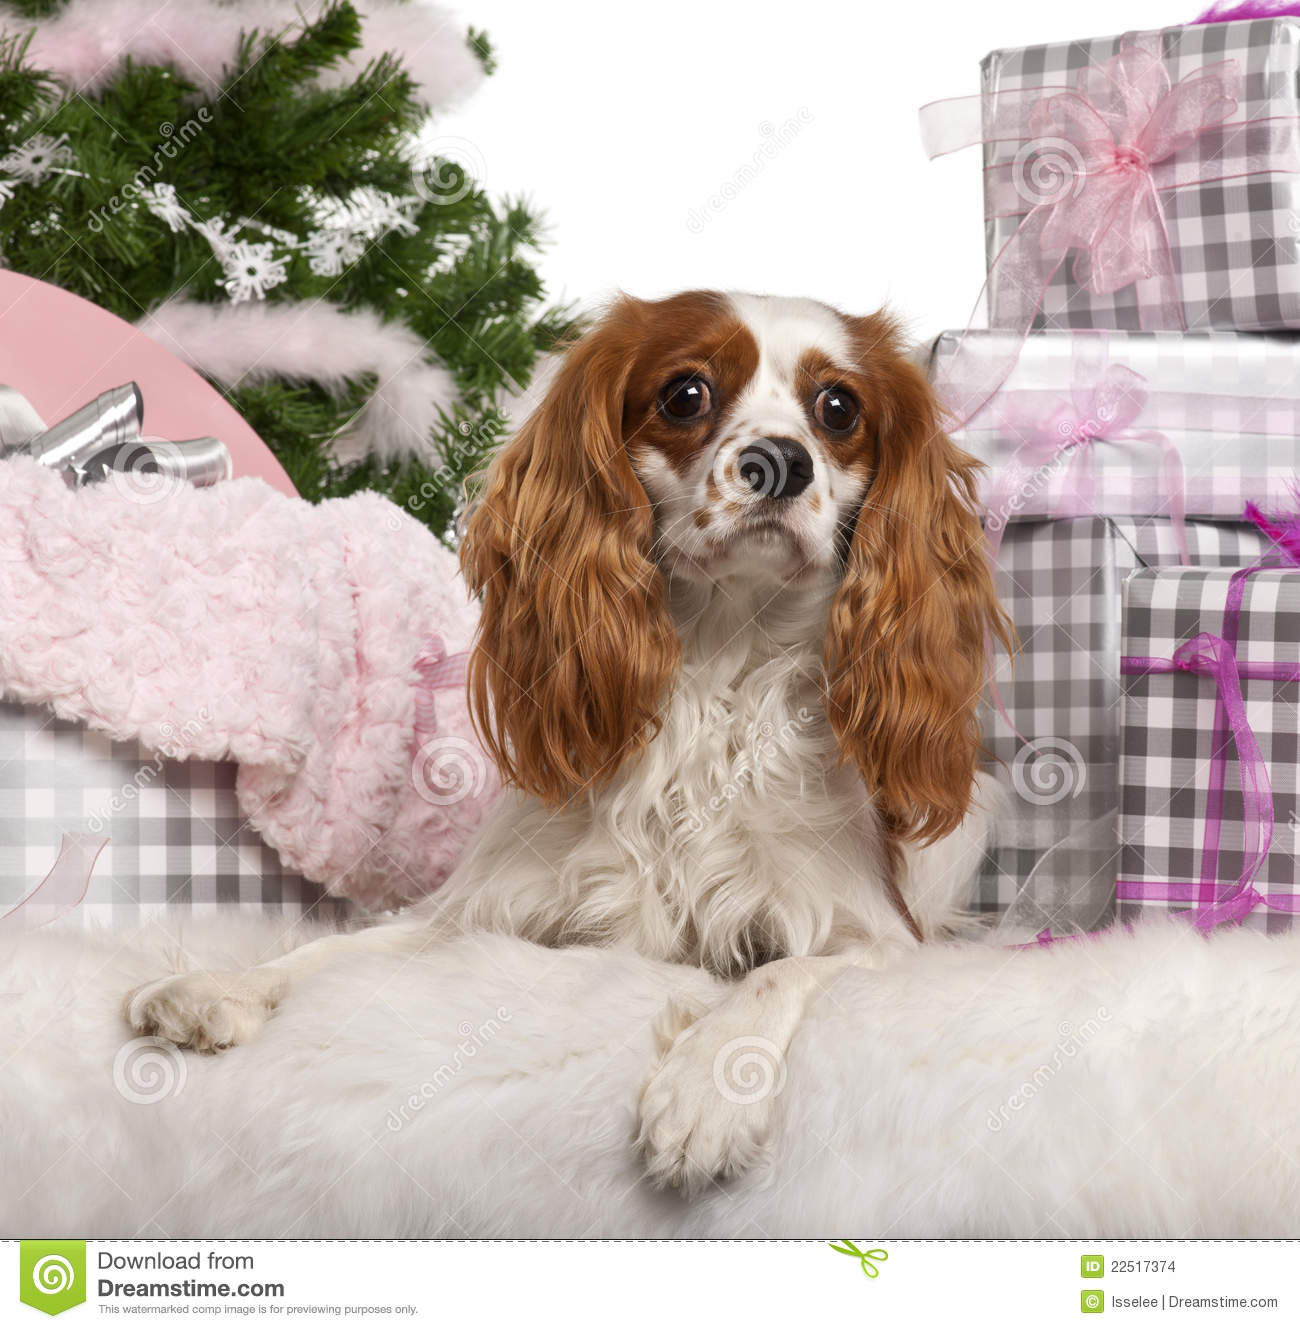 Cavalier King Charles Spaniel, 18 months old, lying with Christmas